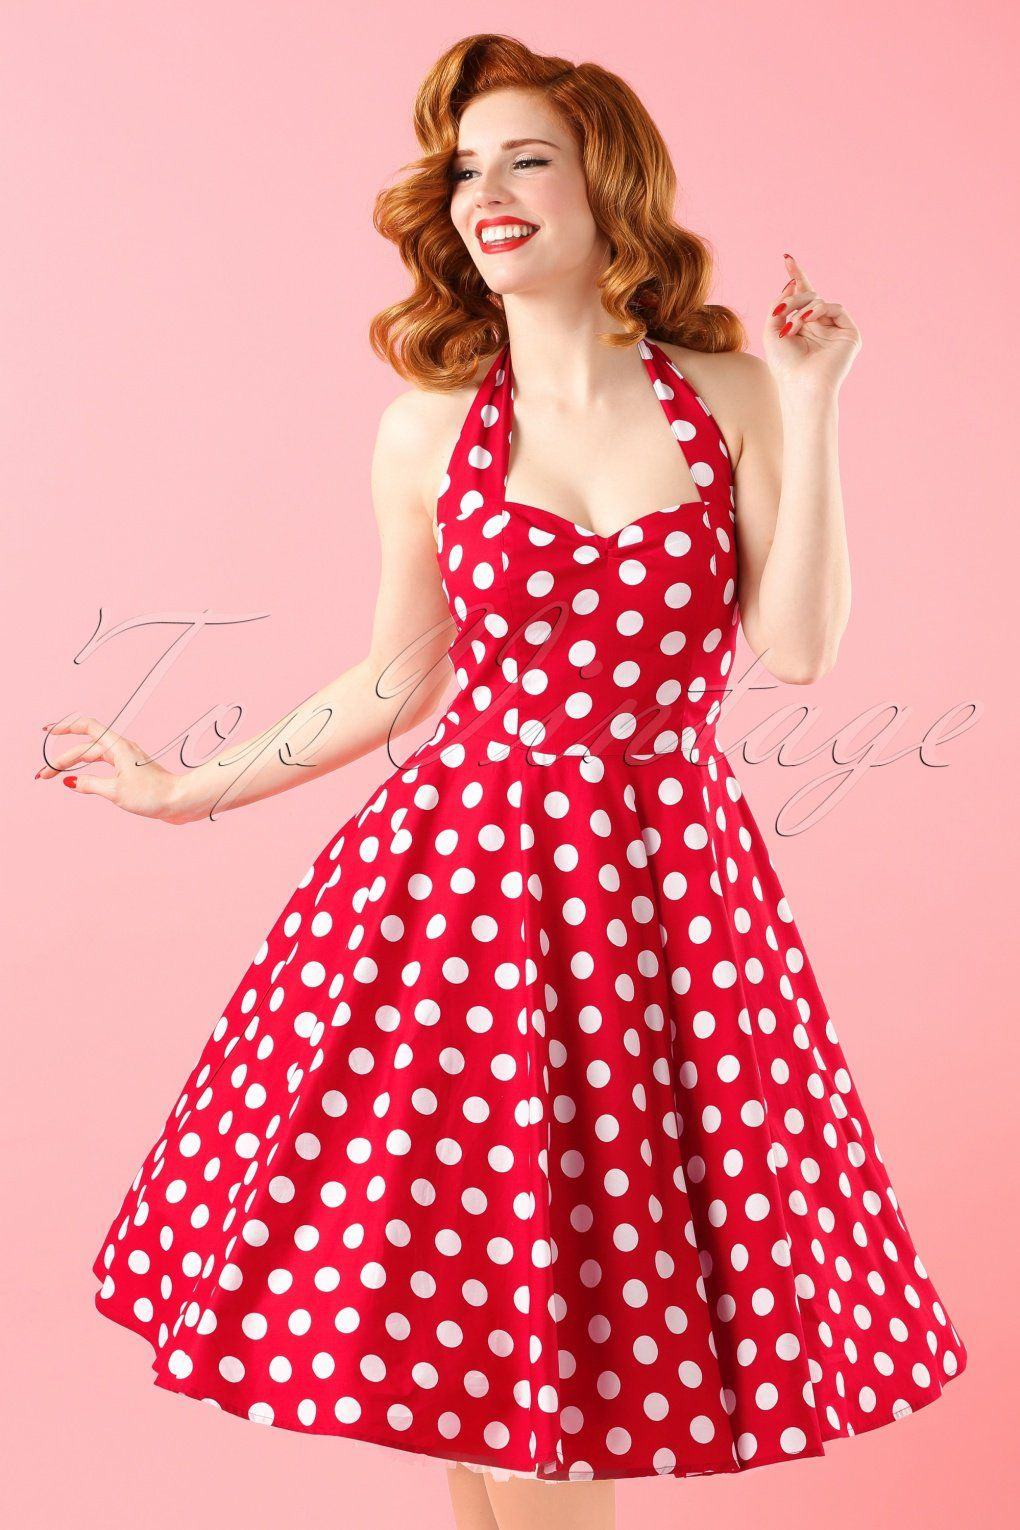 251da237f7f8 Vintage Polka Dot Dresses - 50s Spotty and Ditsy Prints in 2019 ...